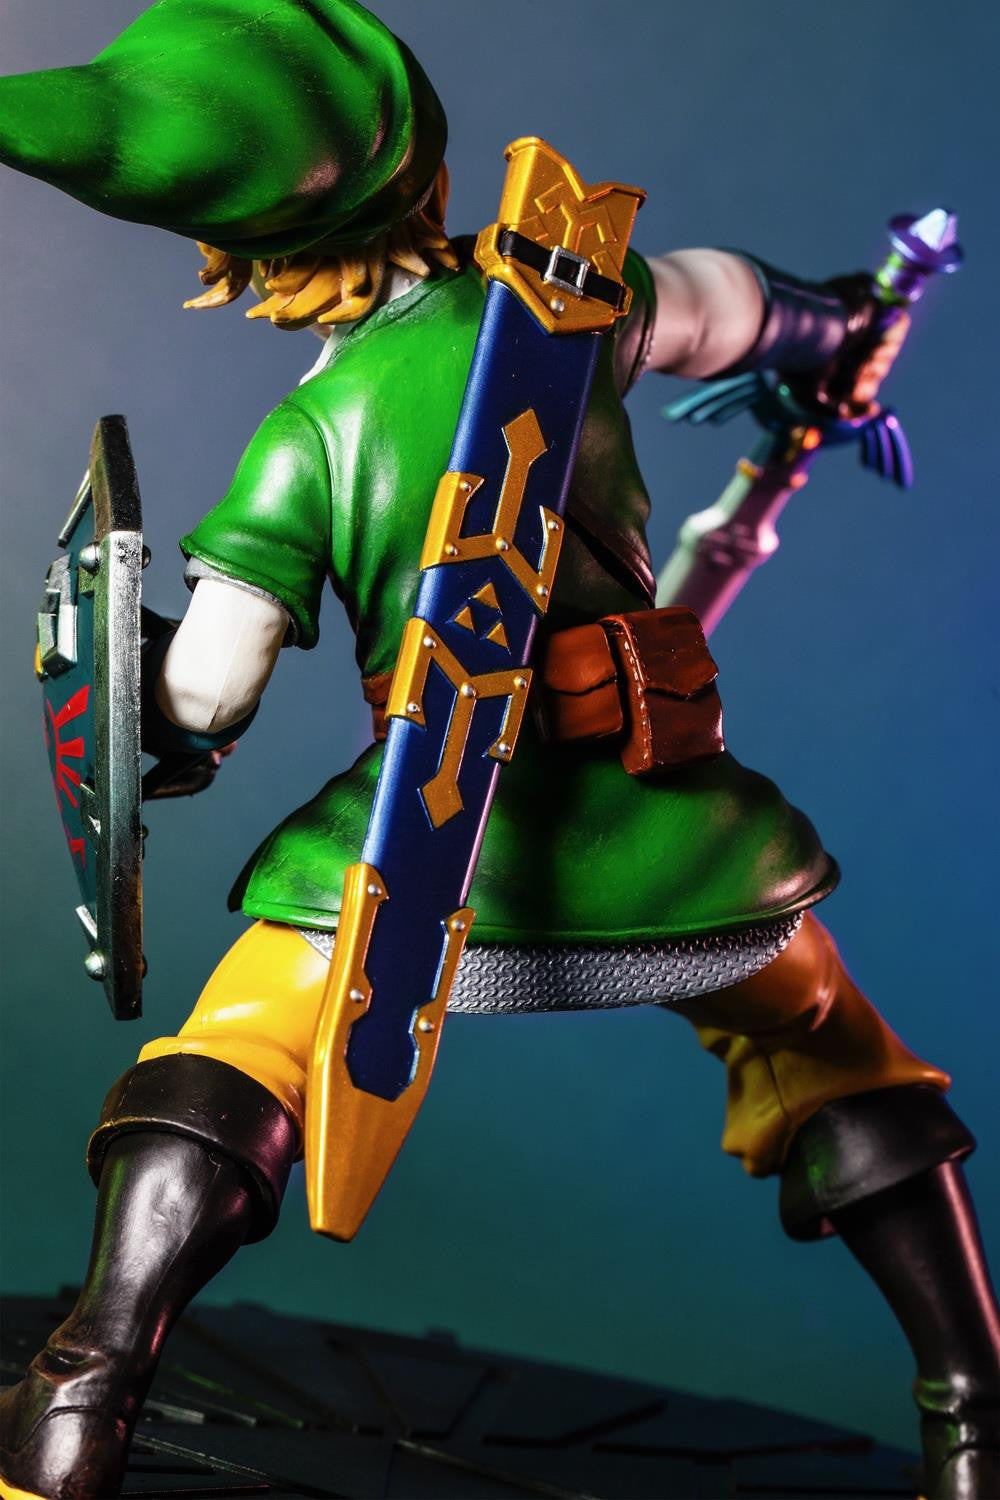 First 4 Figures – The Legend of Zelda: Skyward Sword - Skyward Sword Link Vinyl Statue - Marvelous Toys - 7